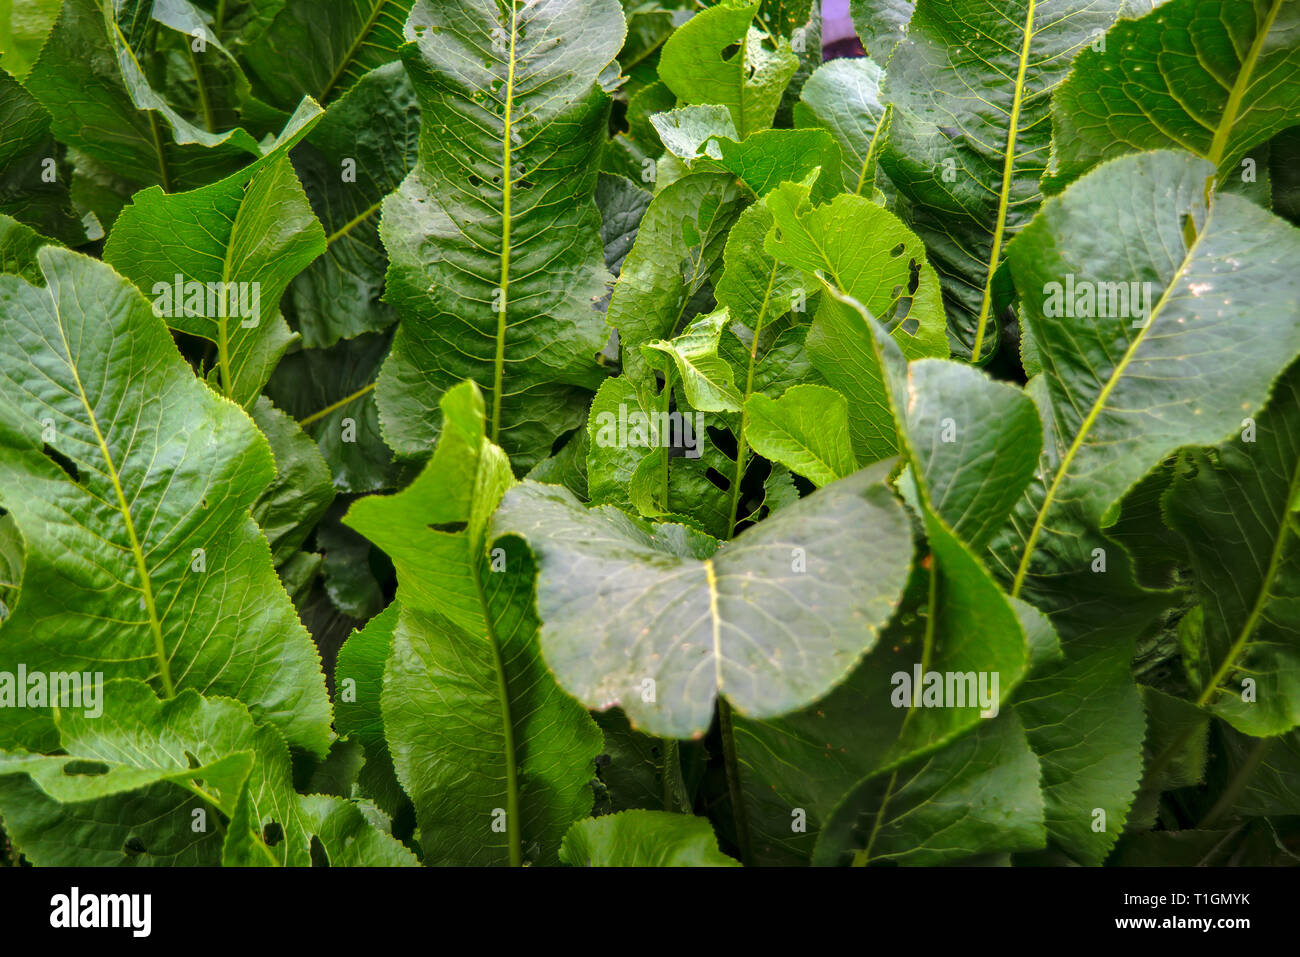 A bush of green leaves of horseradish in the garden in the village. - Stock Image